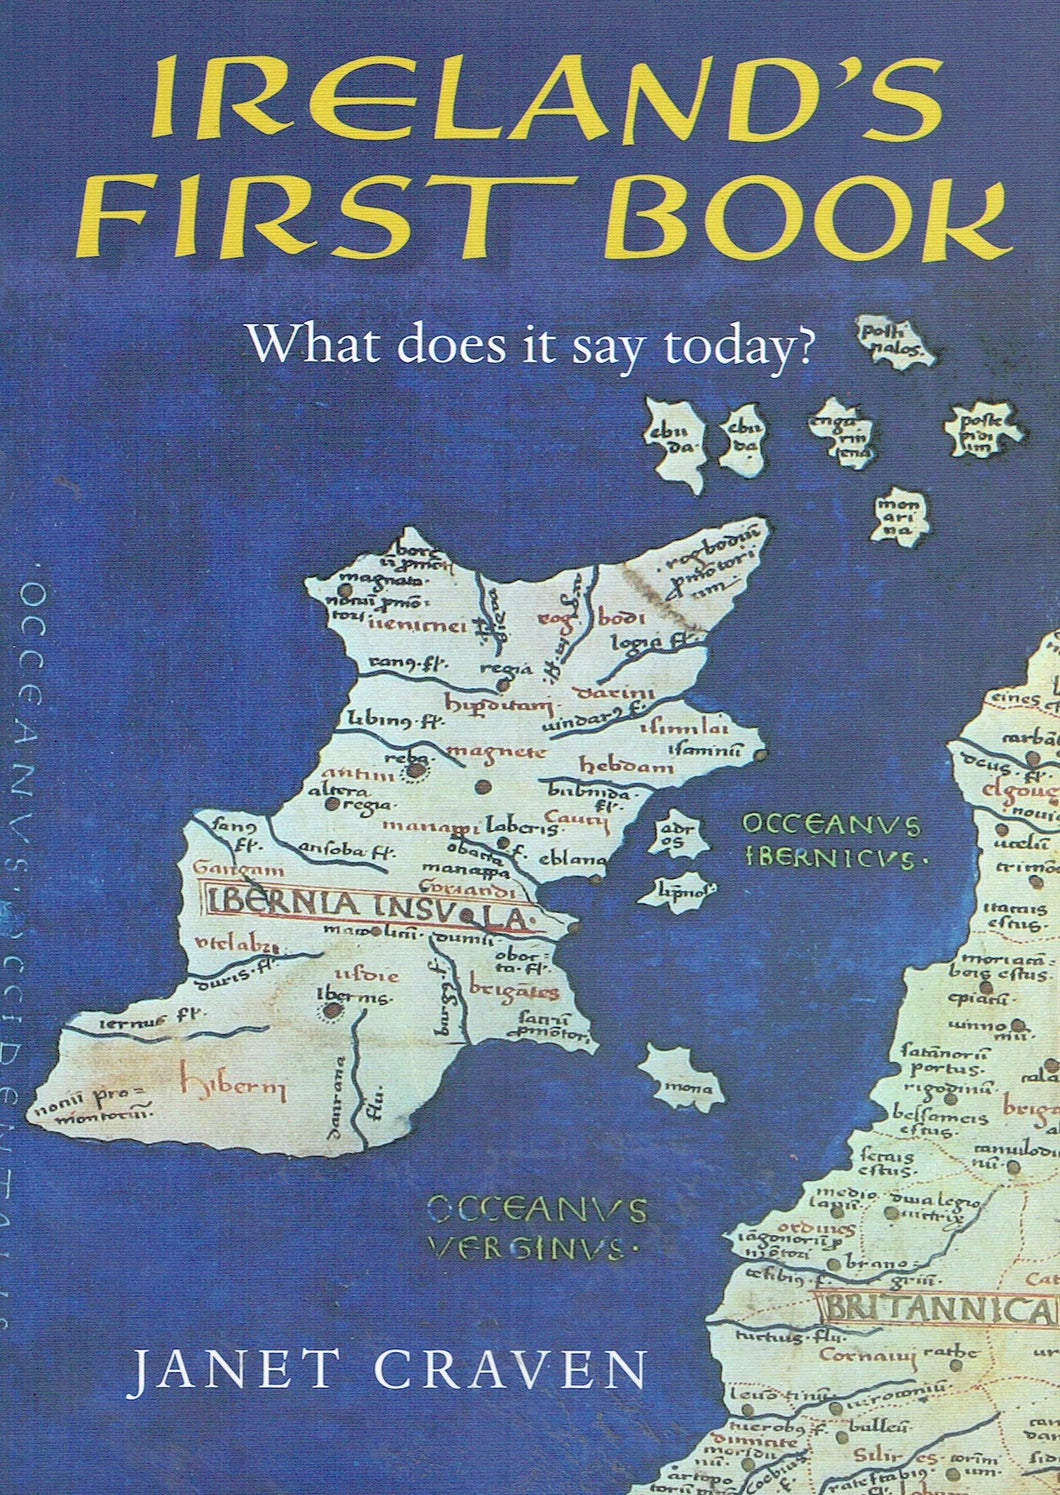 Ireland's First Book. What does it say today?